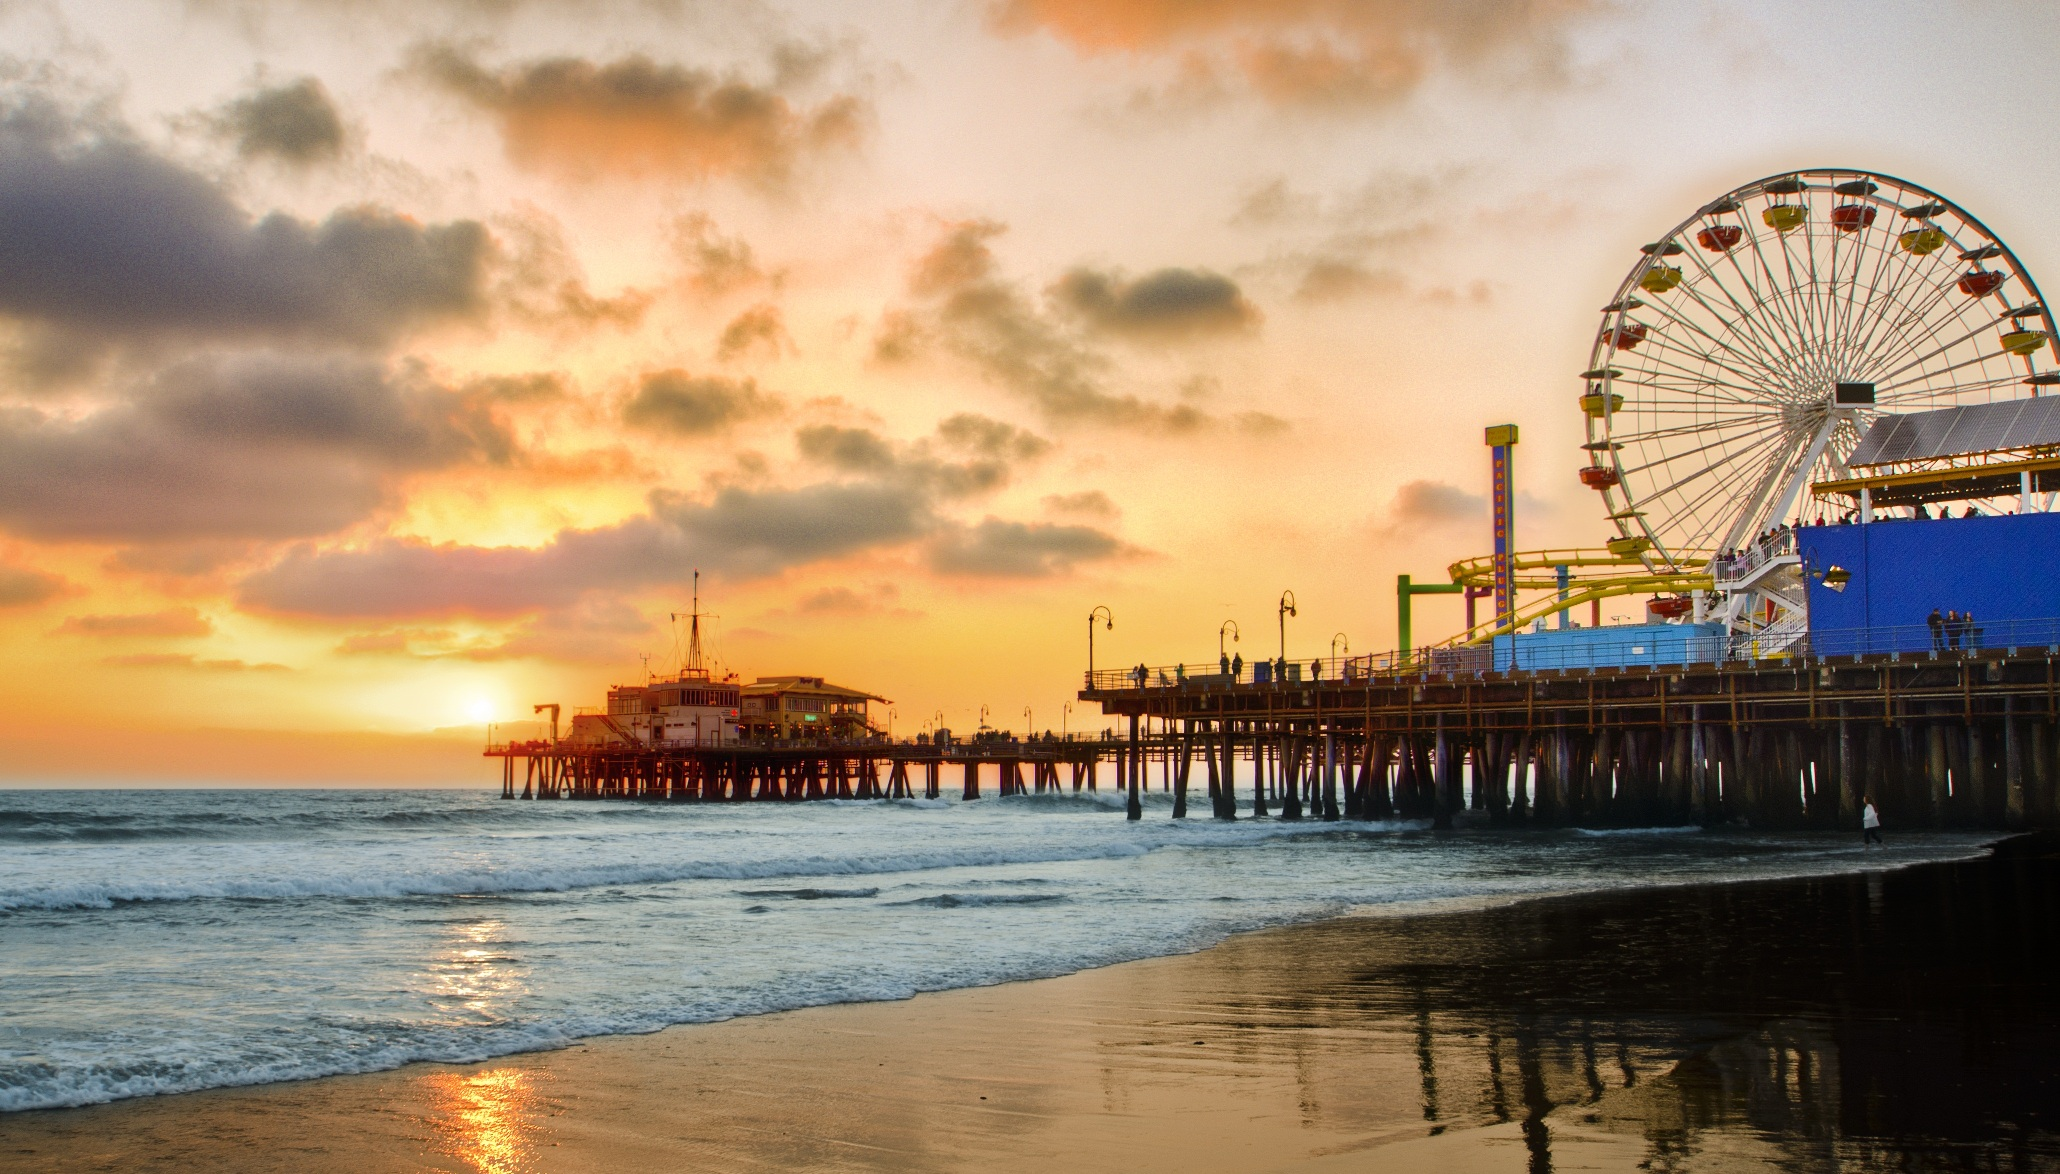 Santa Monica Pier Photo At Sunset